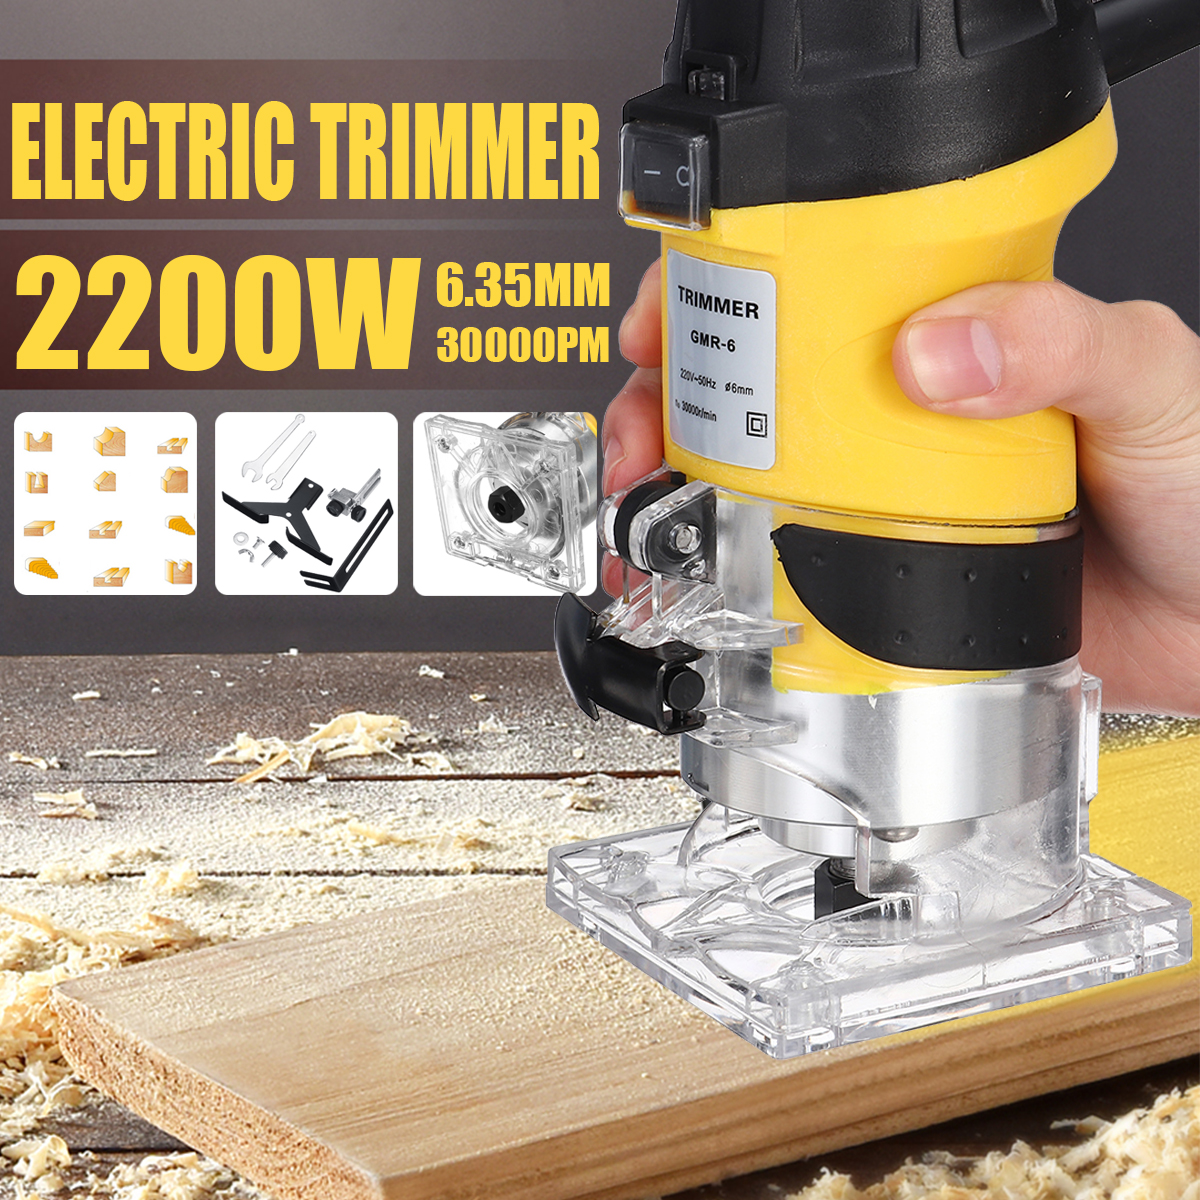 2200W Electric Hand Trimmer Palm Router Laminate Wood Laminator Joiner Cutter ❥